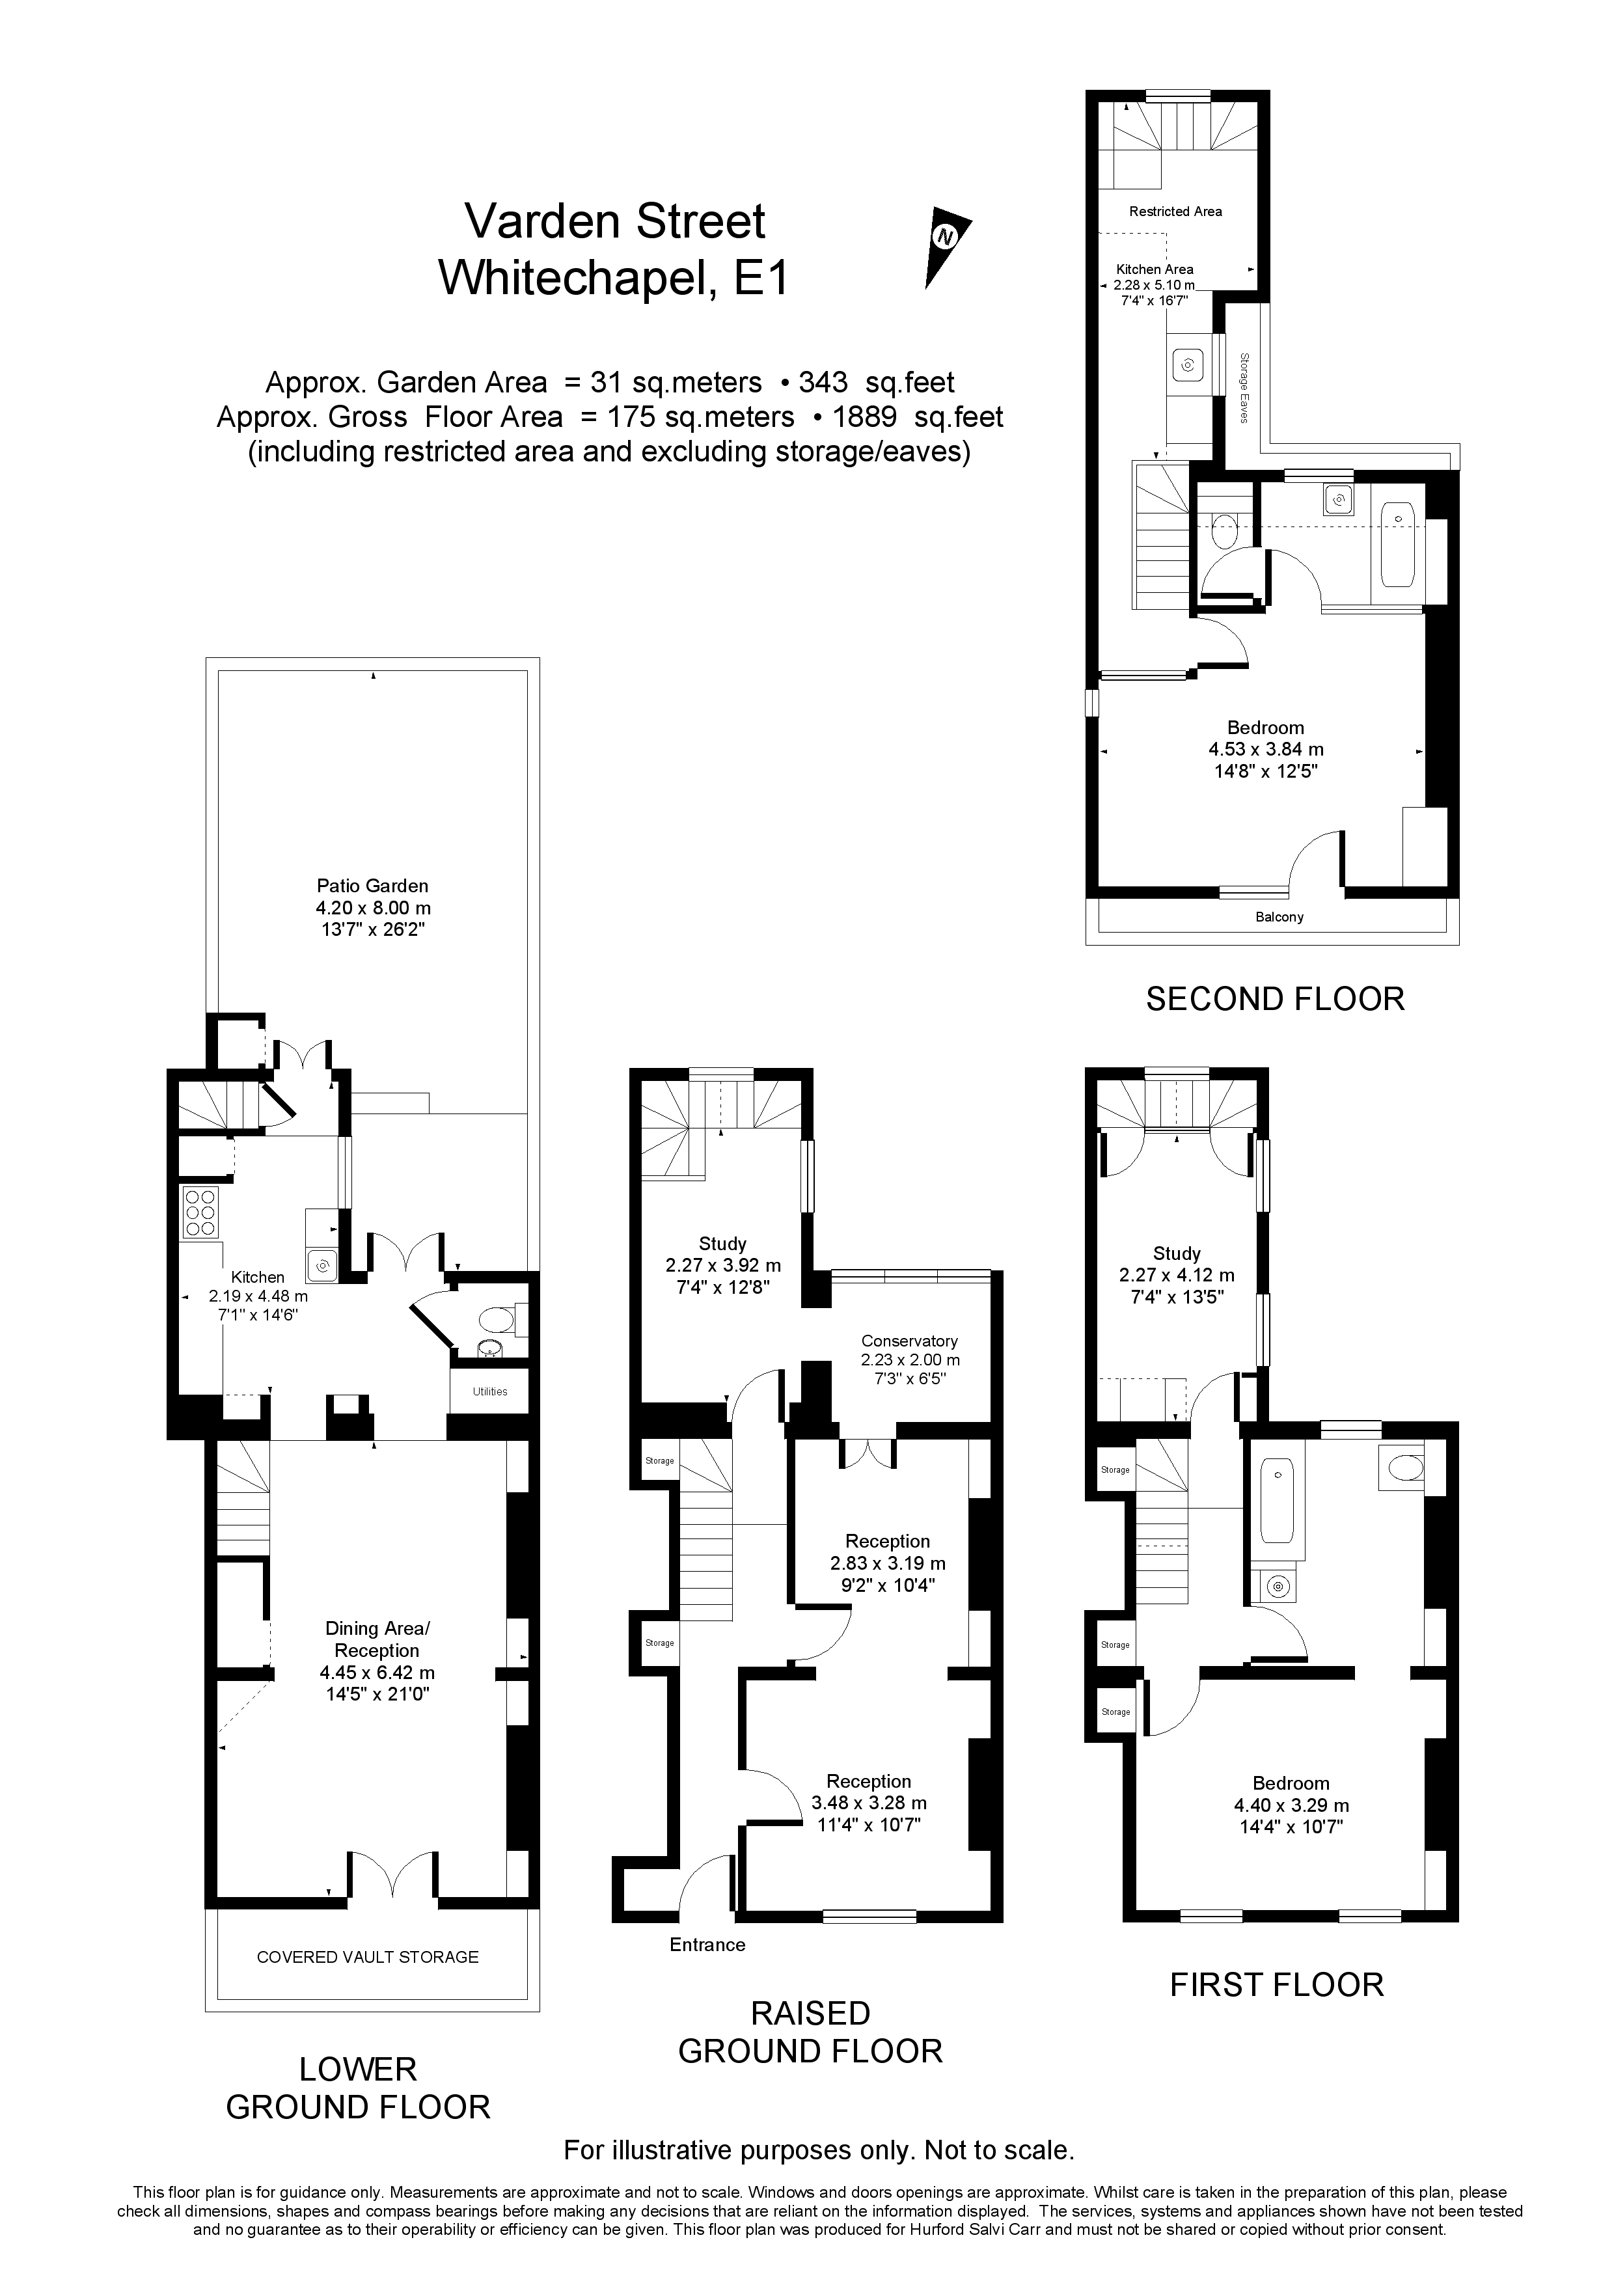 Varden Street, London, E1 floorplan